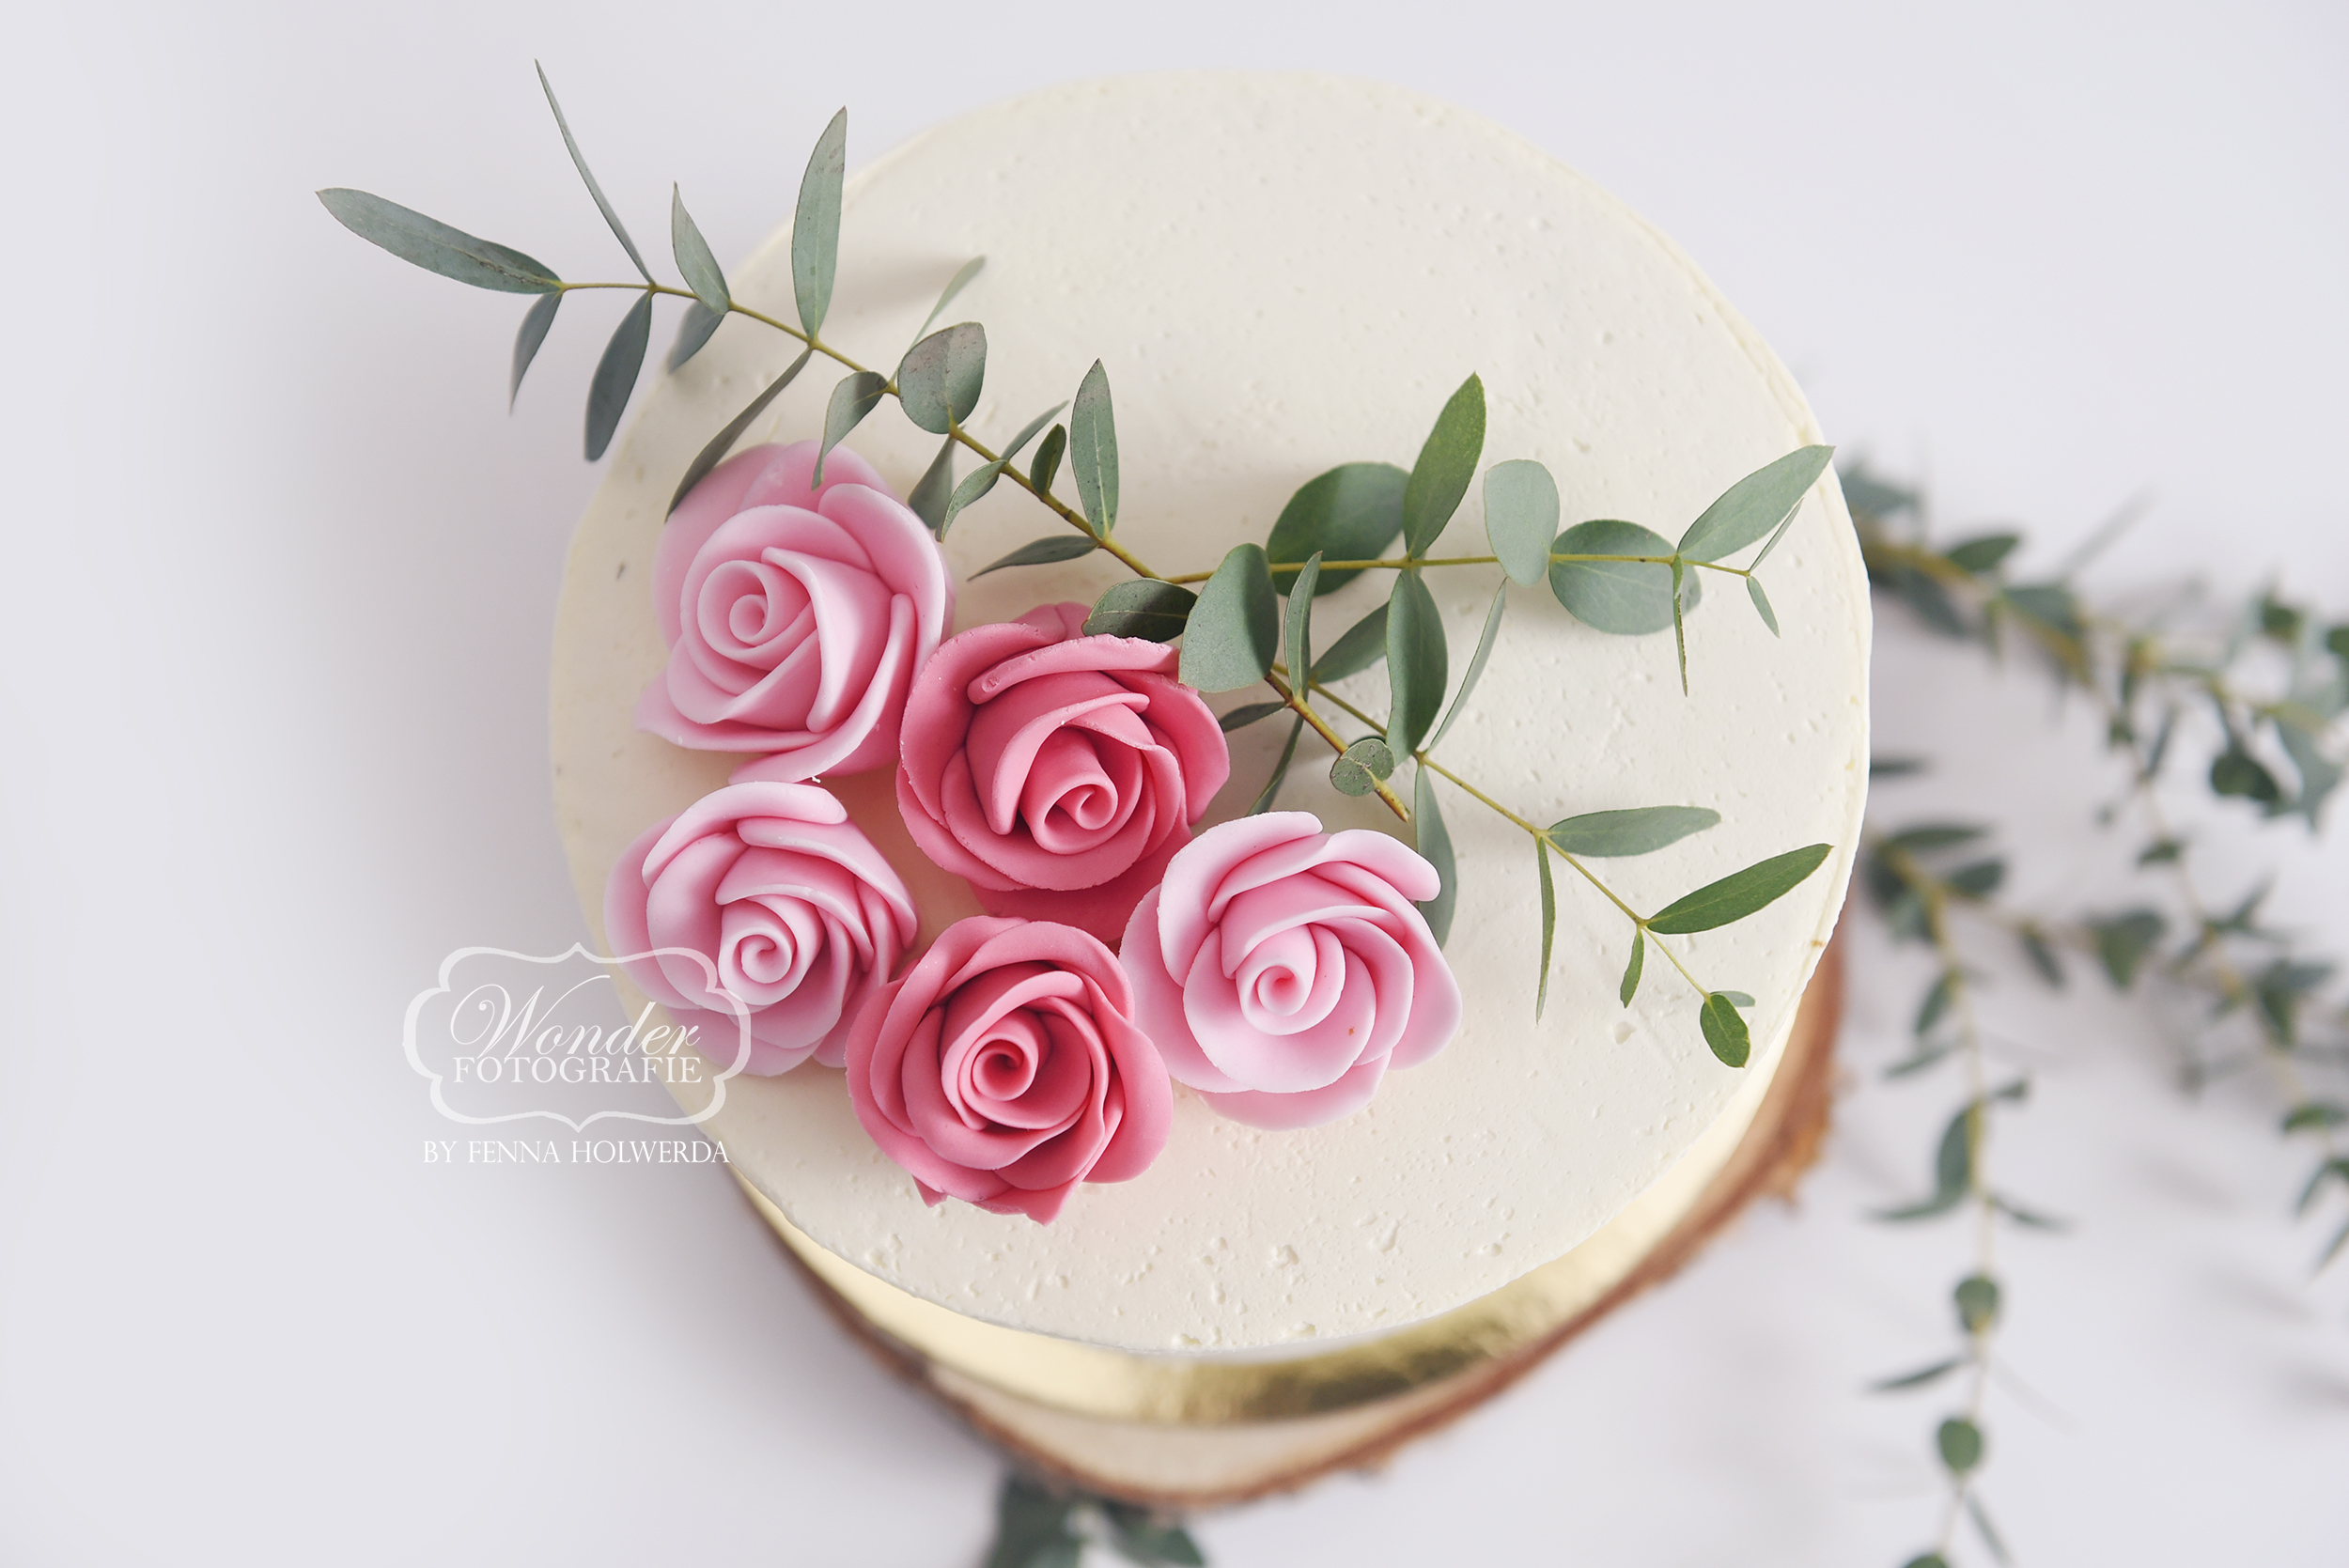 2 boho cake smash botanical photo shoot fotoshoot puur simpel wit Wonder Fotografier Almere